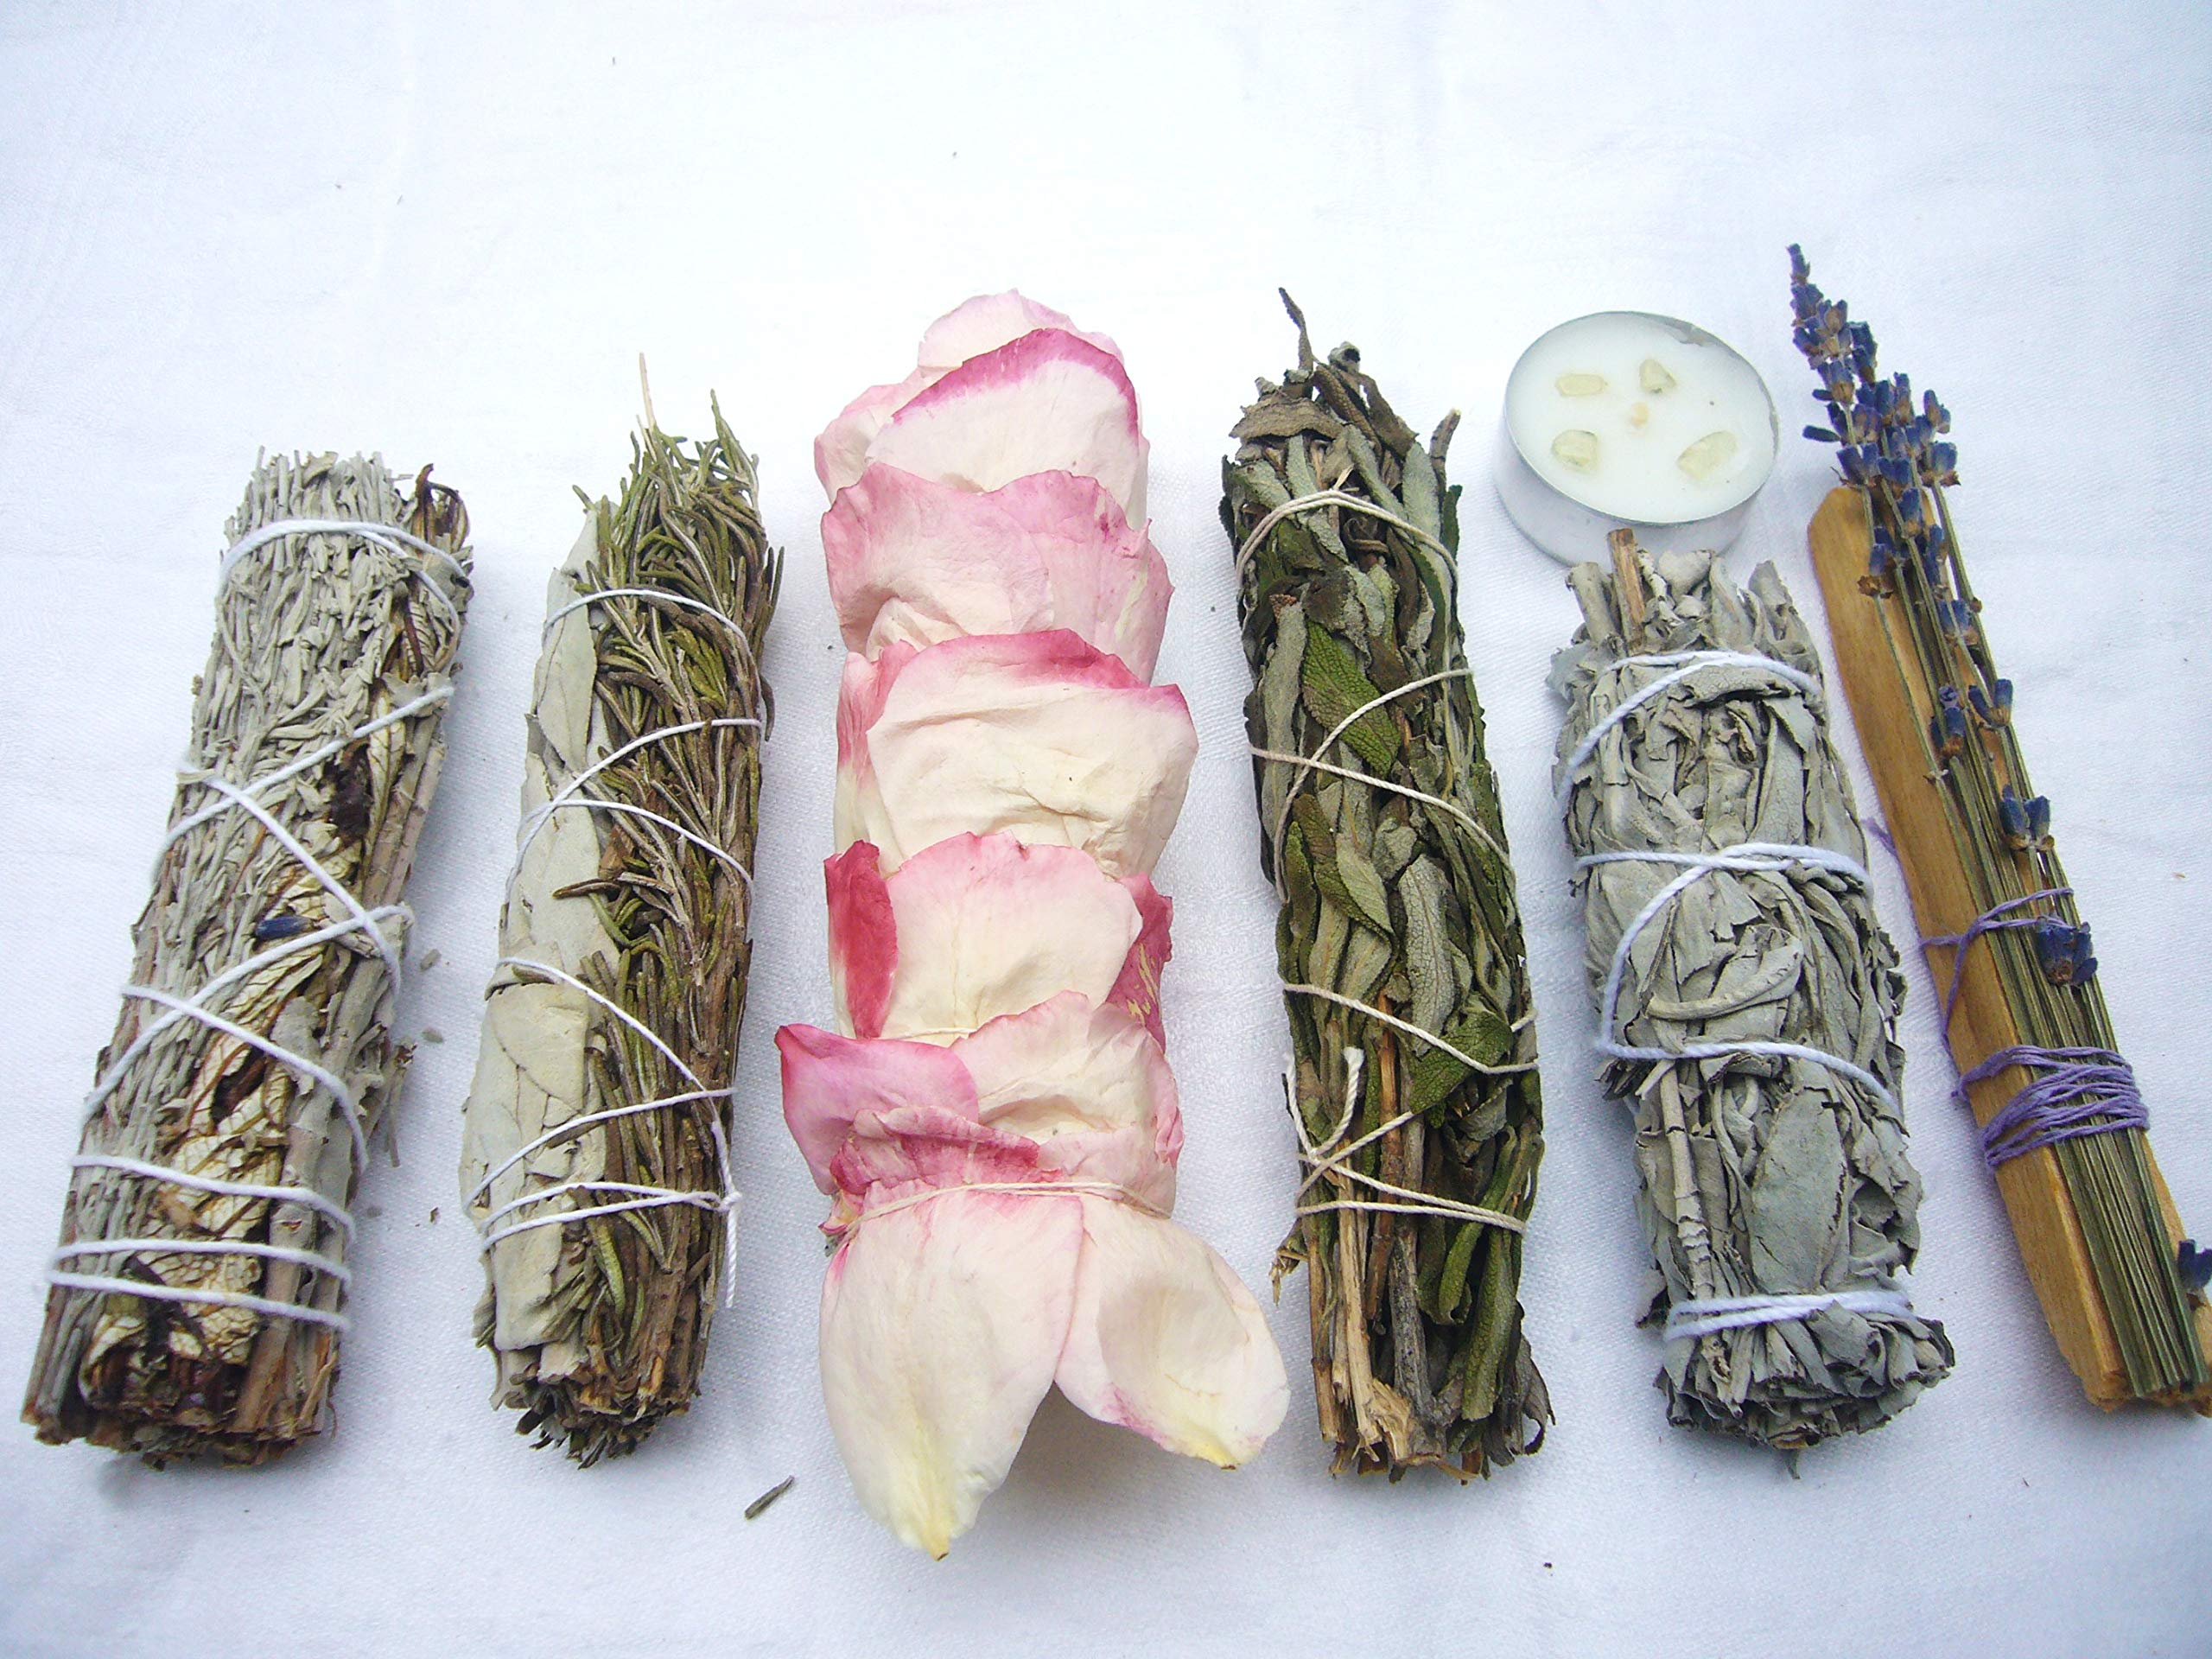 L'AMOUR yes! Luxury Smudge Kit | Rose White Sage, Rosemary, Lavender Smudge Stick, Yerba Santa & Blue Sage, White Sage, Palo Santo, Crystal Candle | Home Cleansing, Blessing, Manifesting, Rituals by L'AMOUR yes! (Image #3)